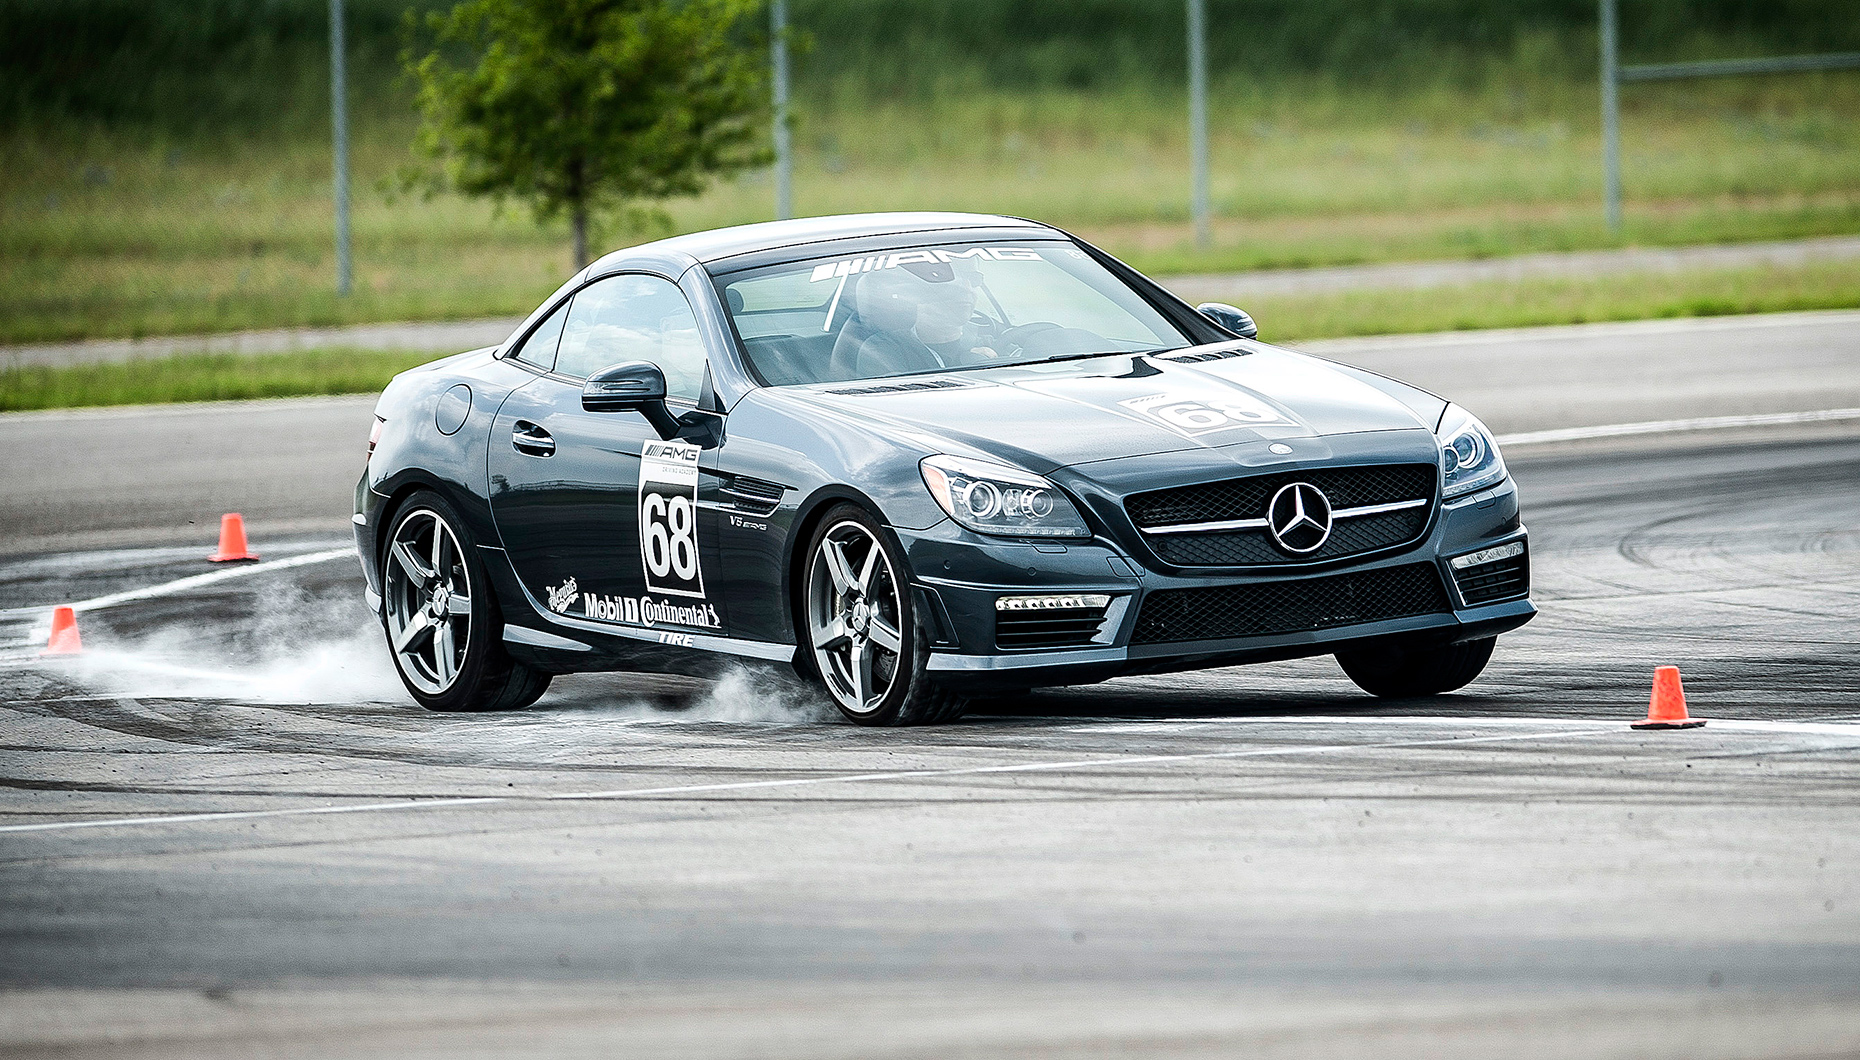 2014-AMG-Driving-Academy_1513